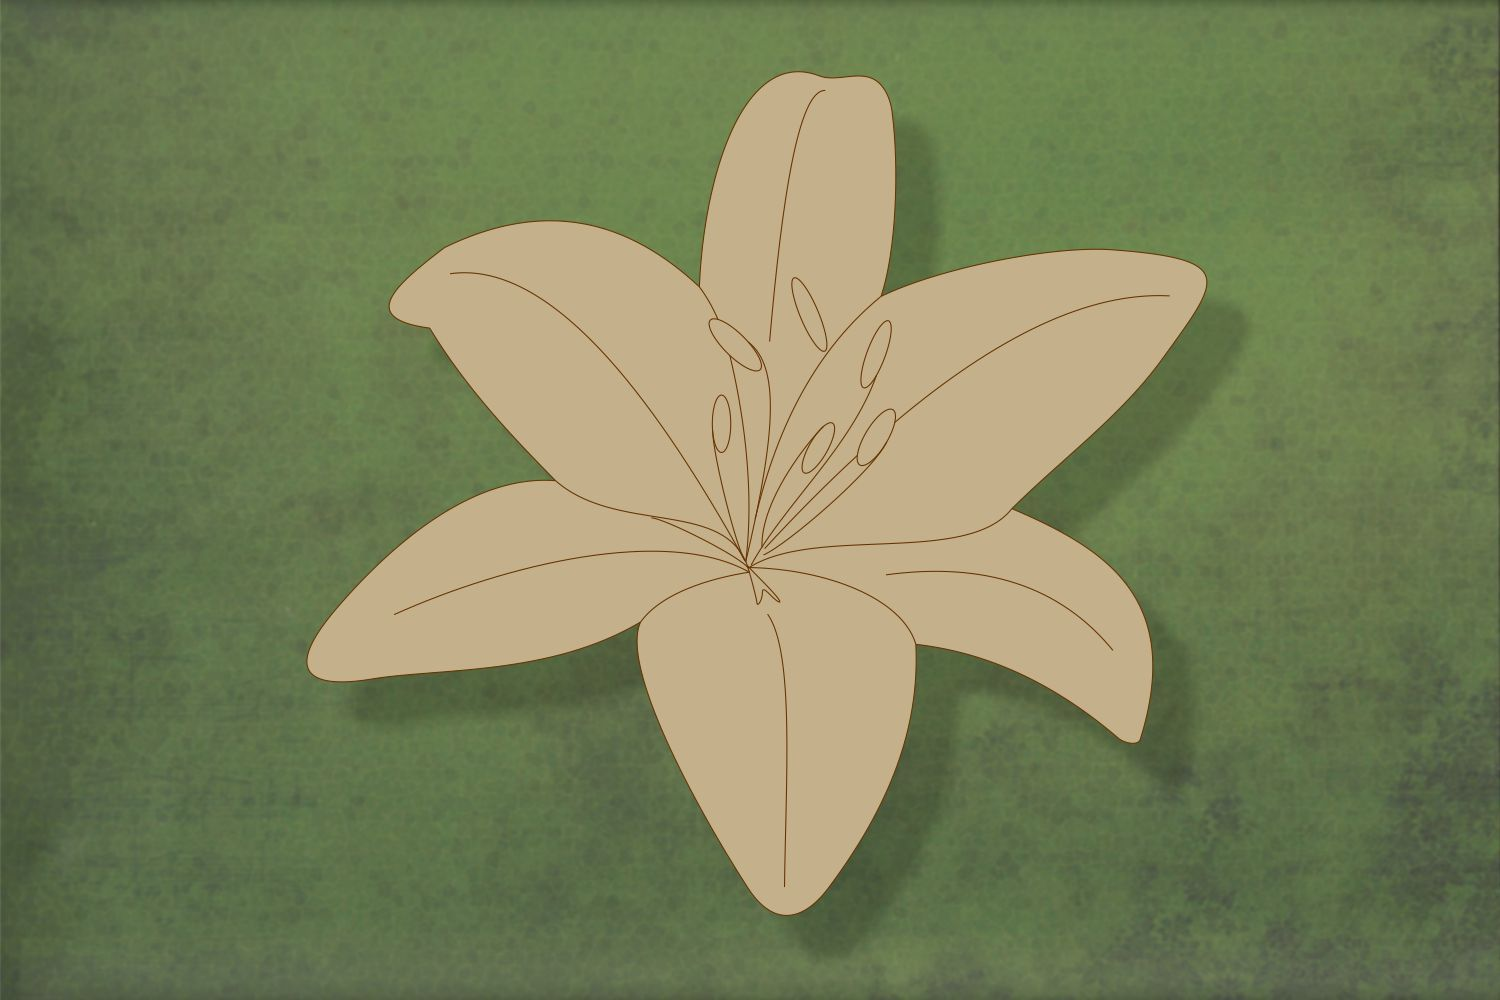 Laser cut, blank wooden Lily with etched detail shape for craft